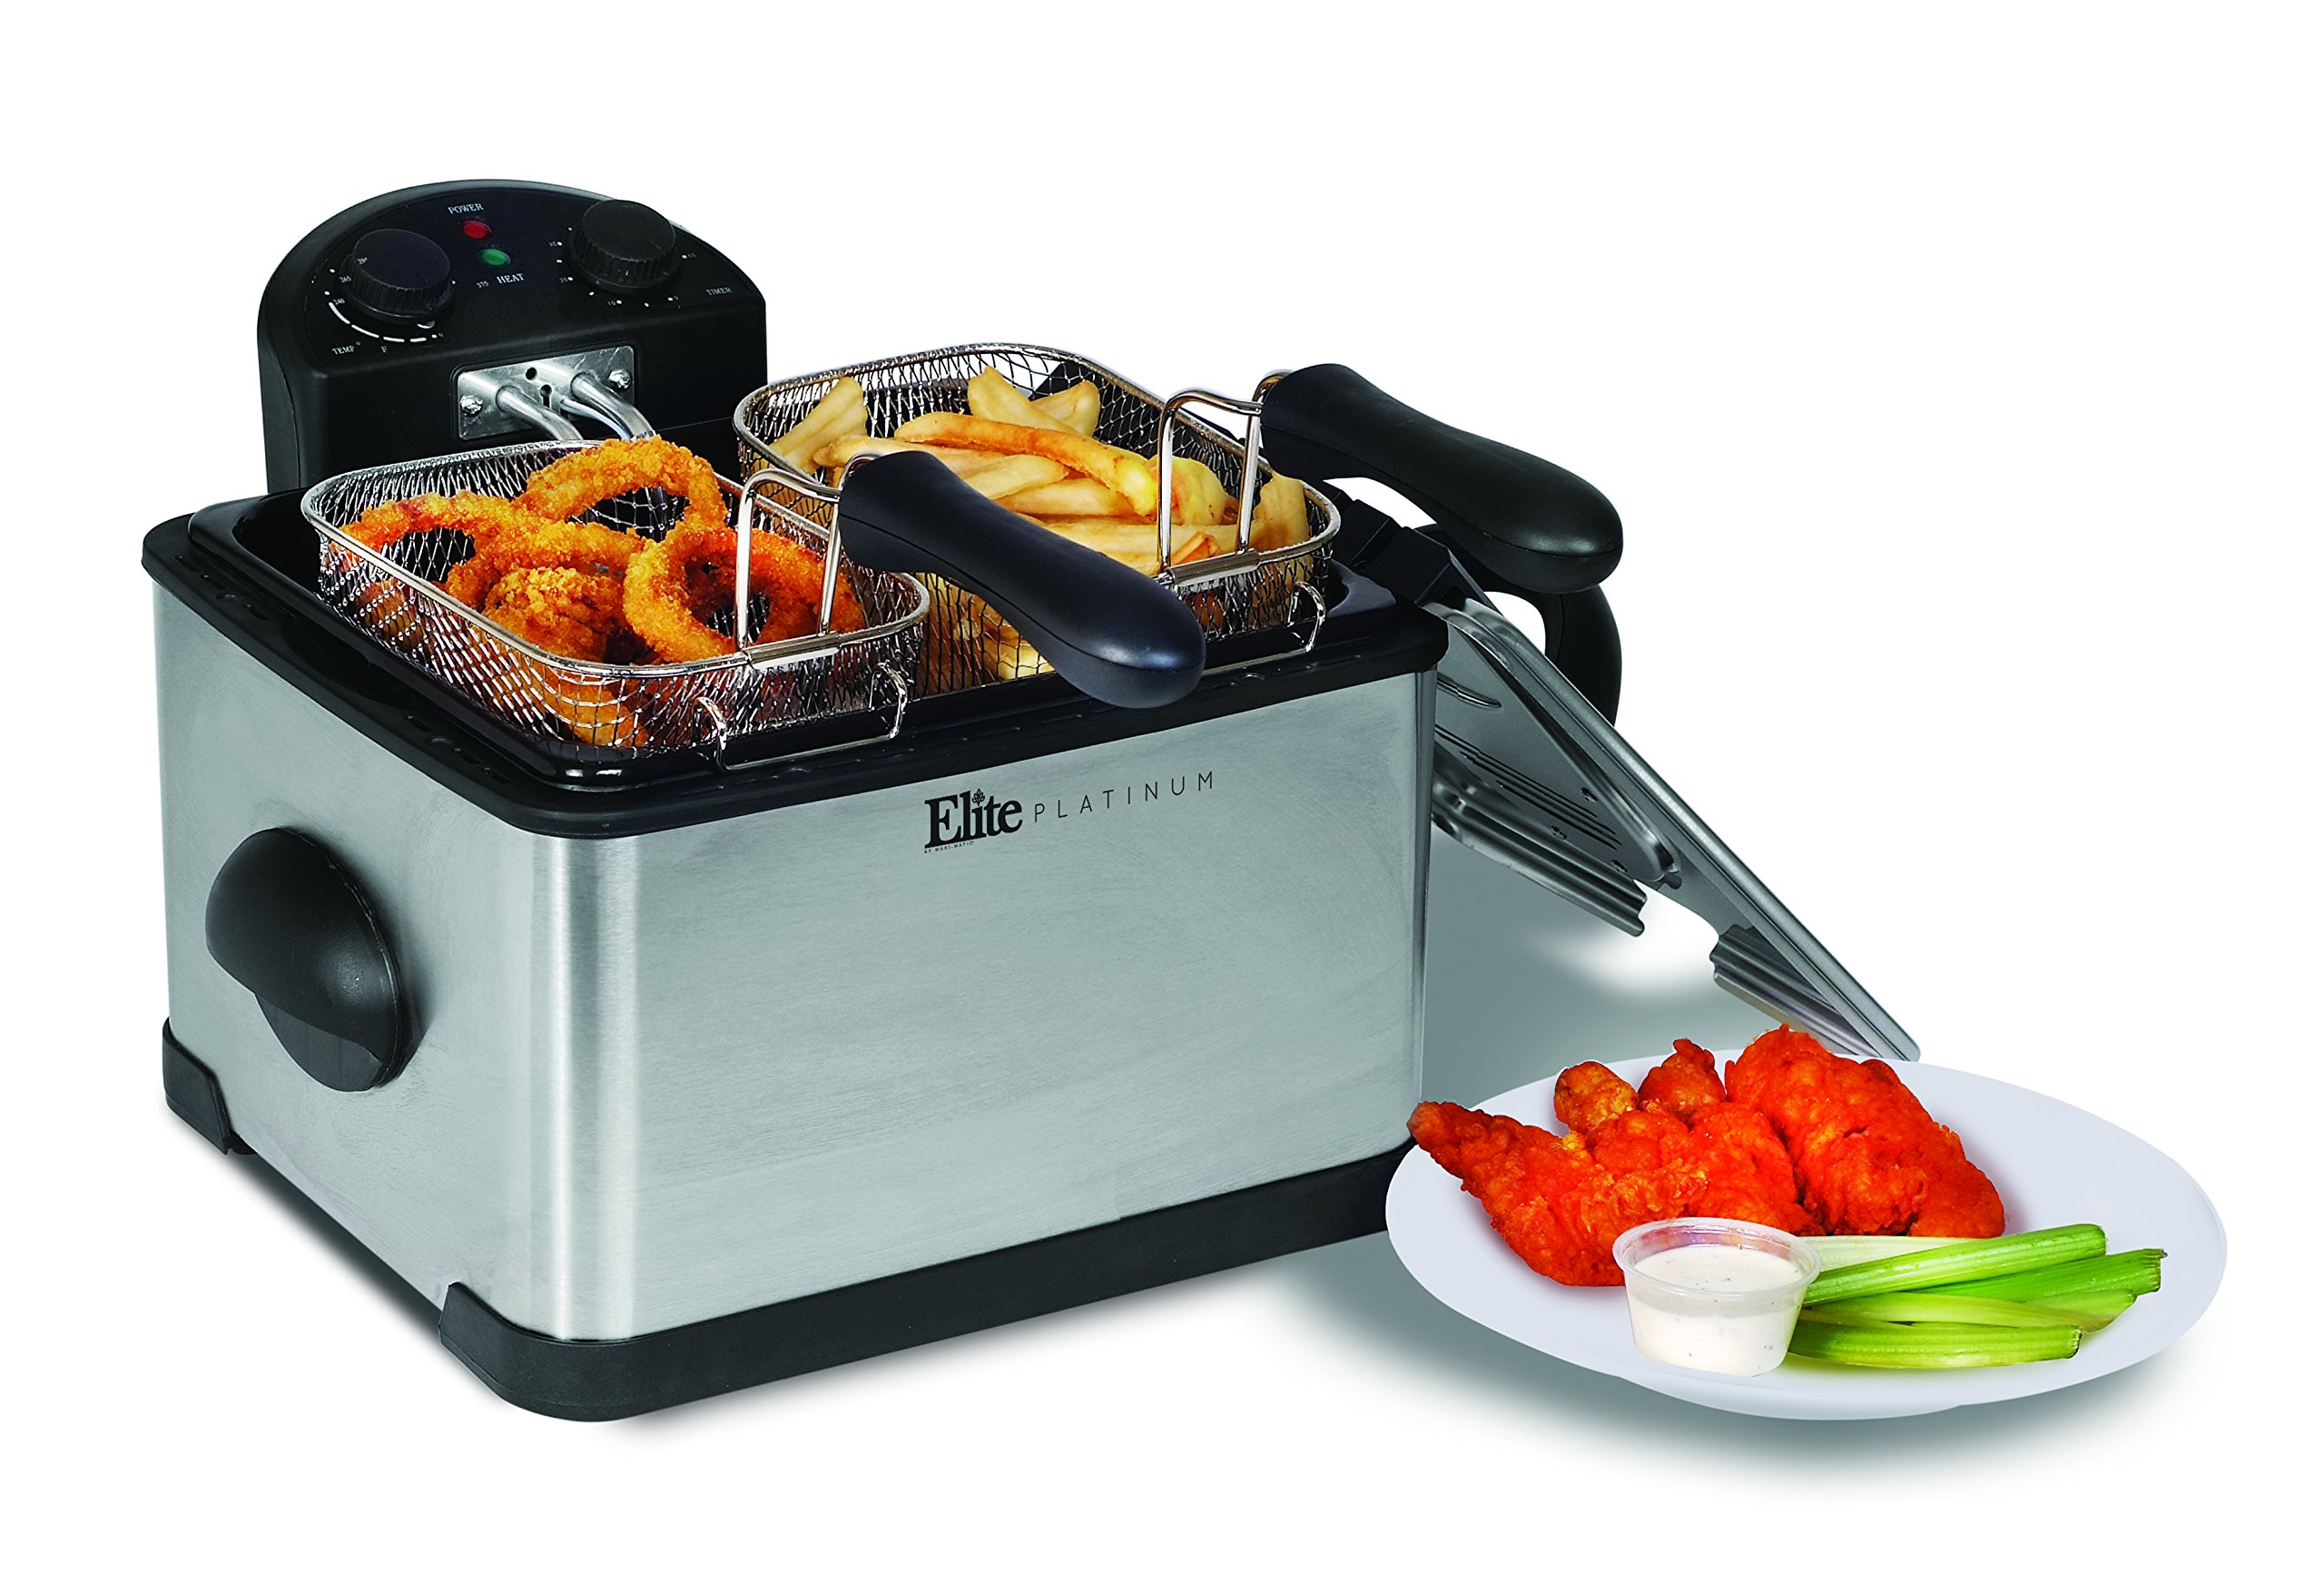 Elite Platinum EDF-401T Maxi-Matic 1700-Watt Stainless-Steel Triple Basket Electric Deep Fryer with Timer and Temperature Knobs and Odor Free Filter, 4.2L/17-Cup